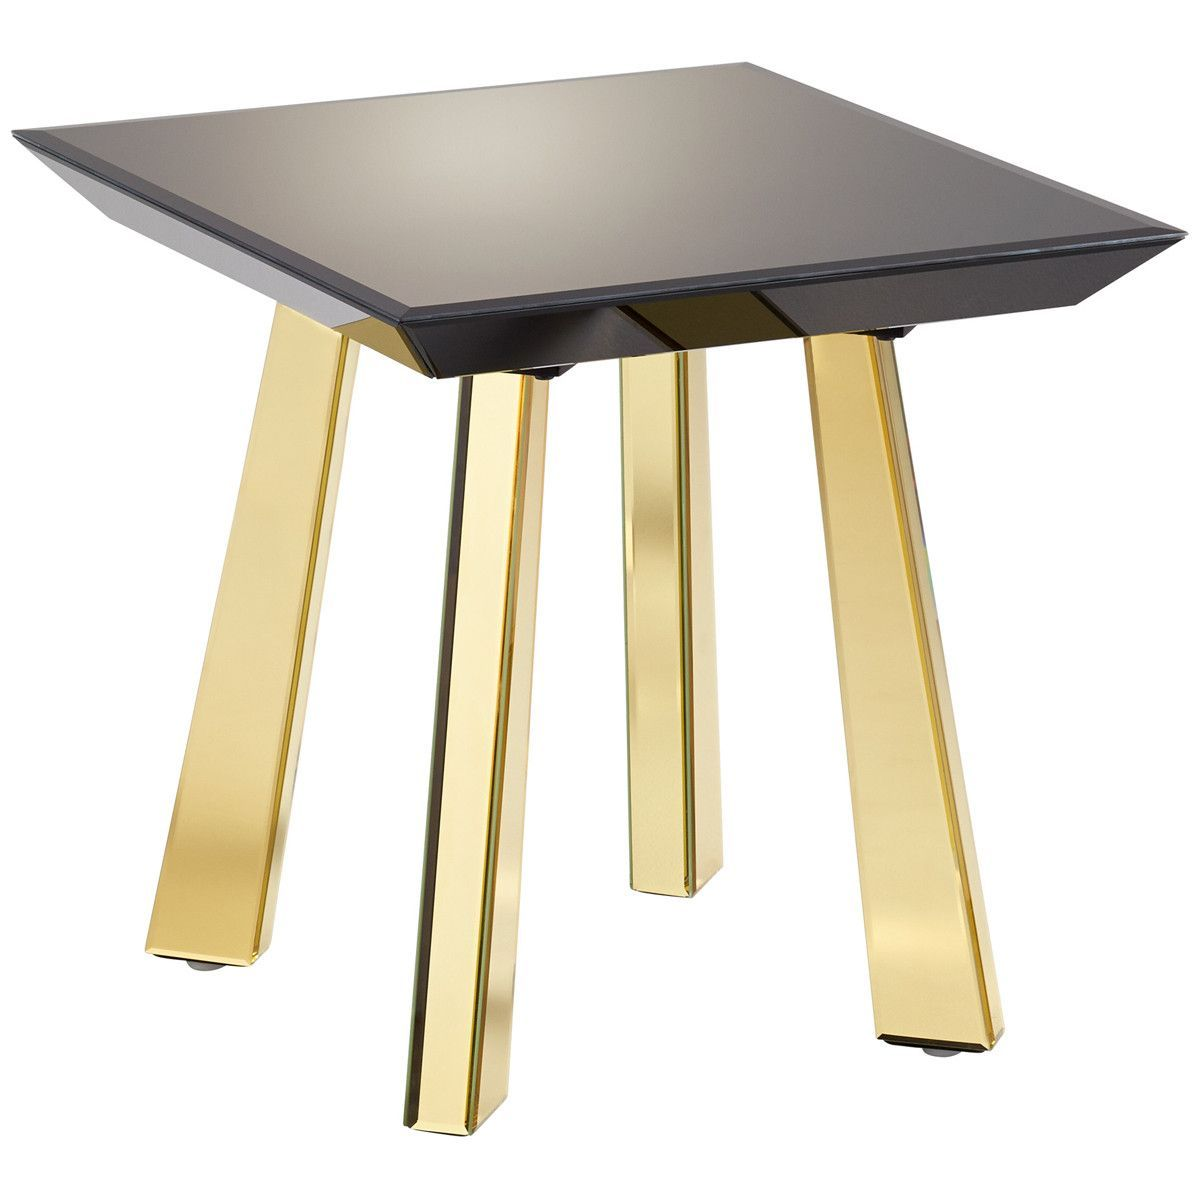 marble color living kijiji table ideas design tiffany decor tables lighting painting target shades accent contemporary drum hafley lamp mini sma outdoor for room redmond end